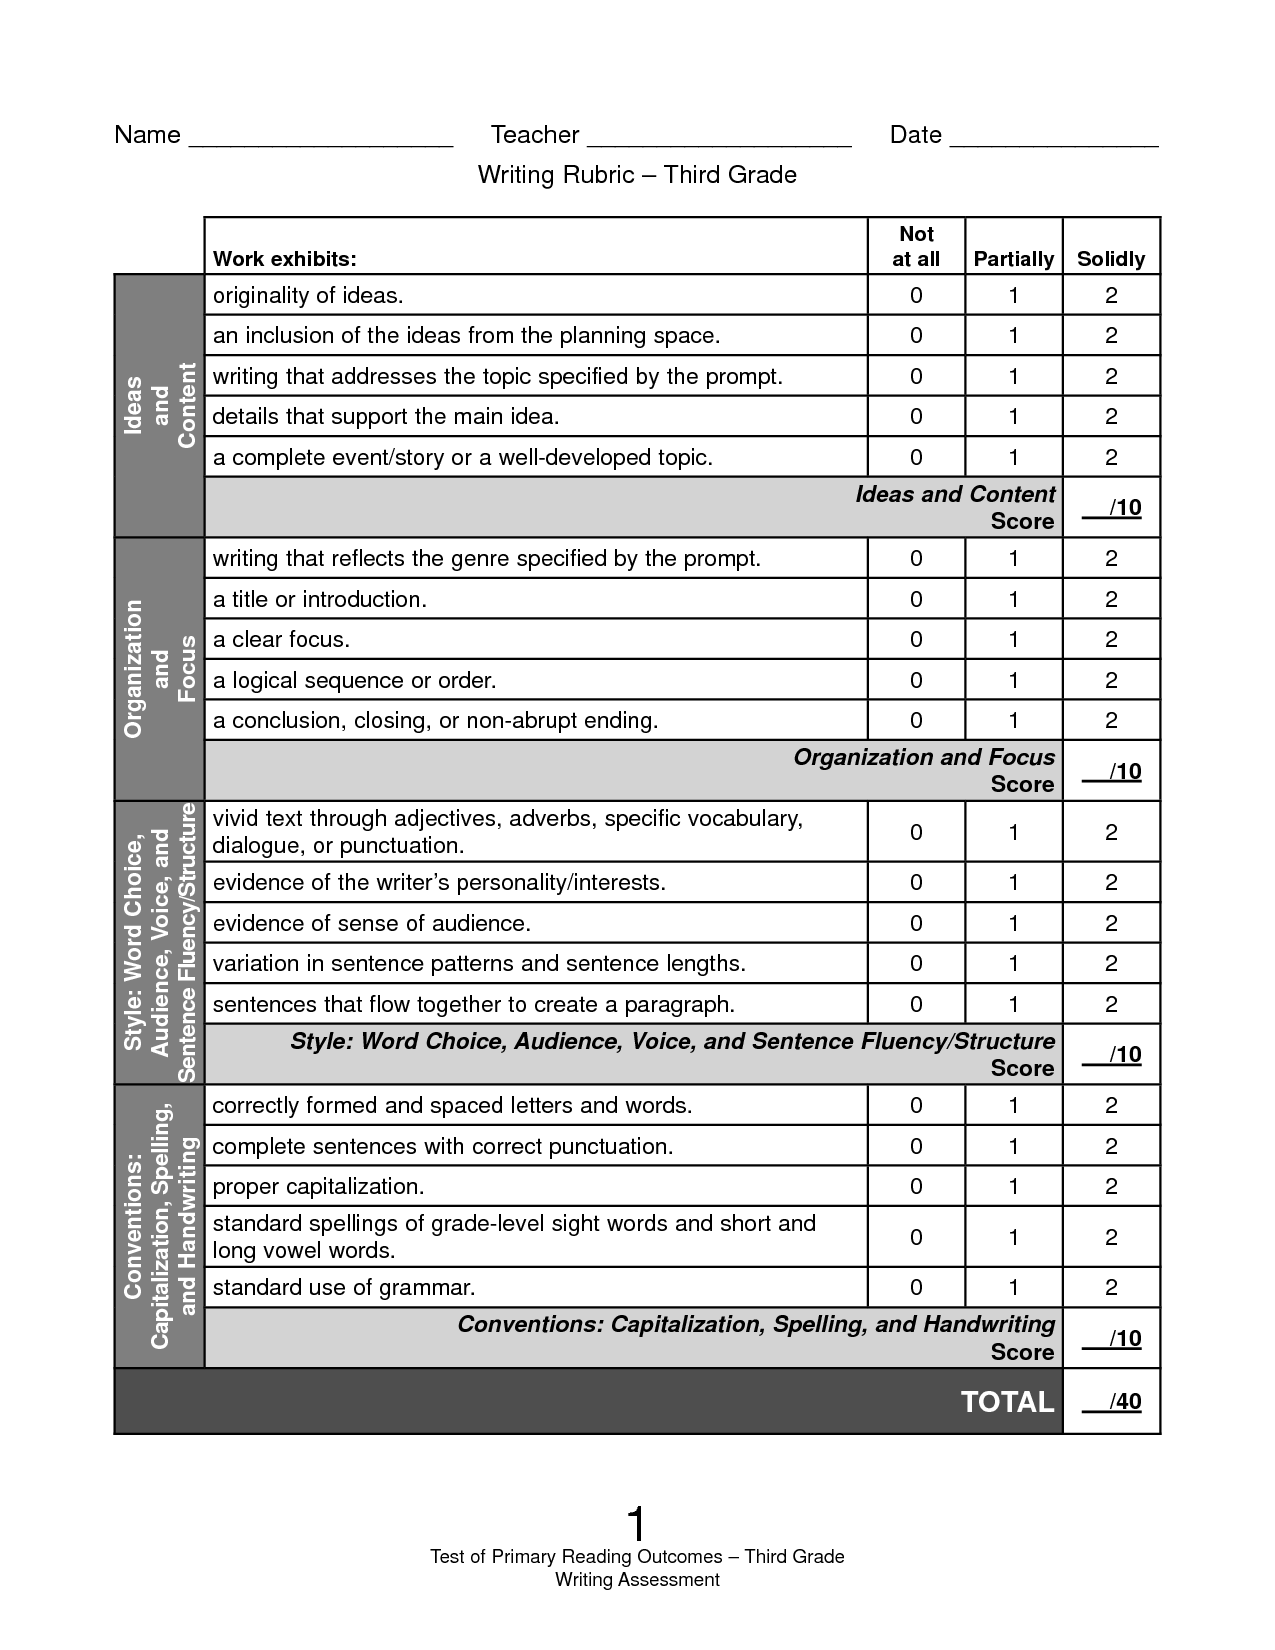 ged essay rubric printable Ged essay topics: below are the instructions as you will see them on the actual ged test i'll give you feedback and a score according to the ged scoring rubric.